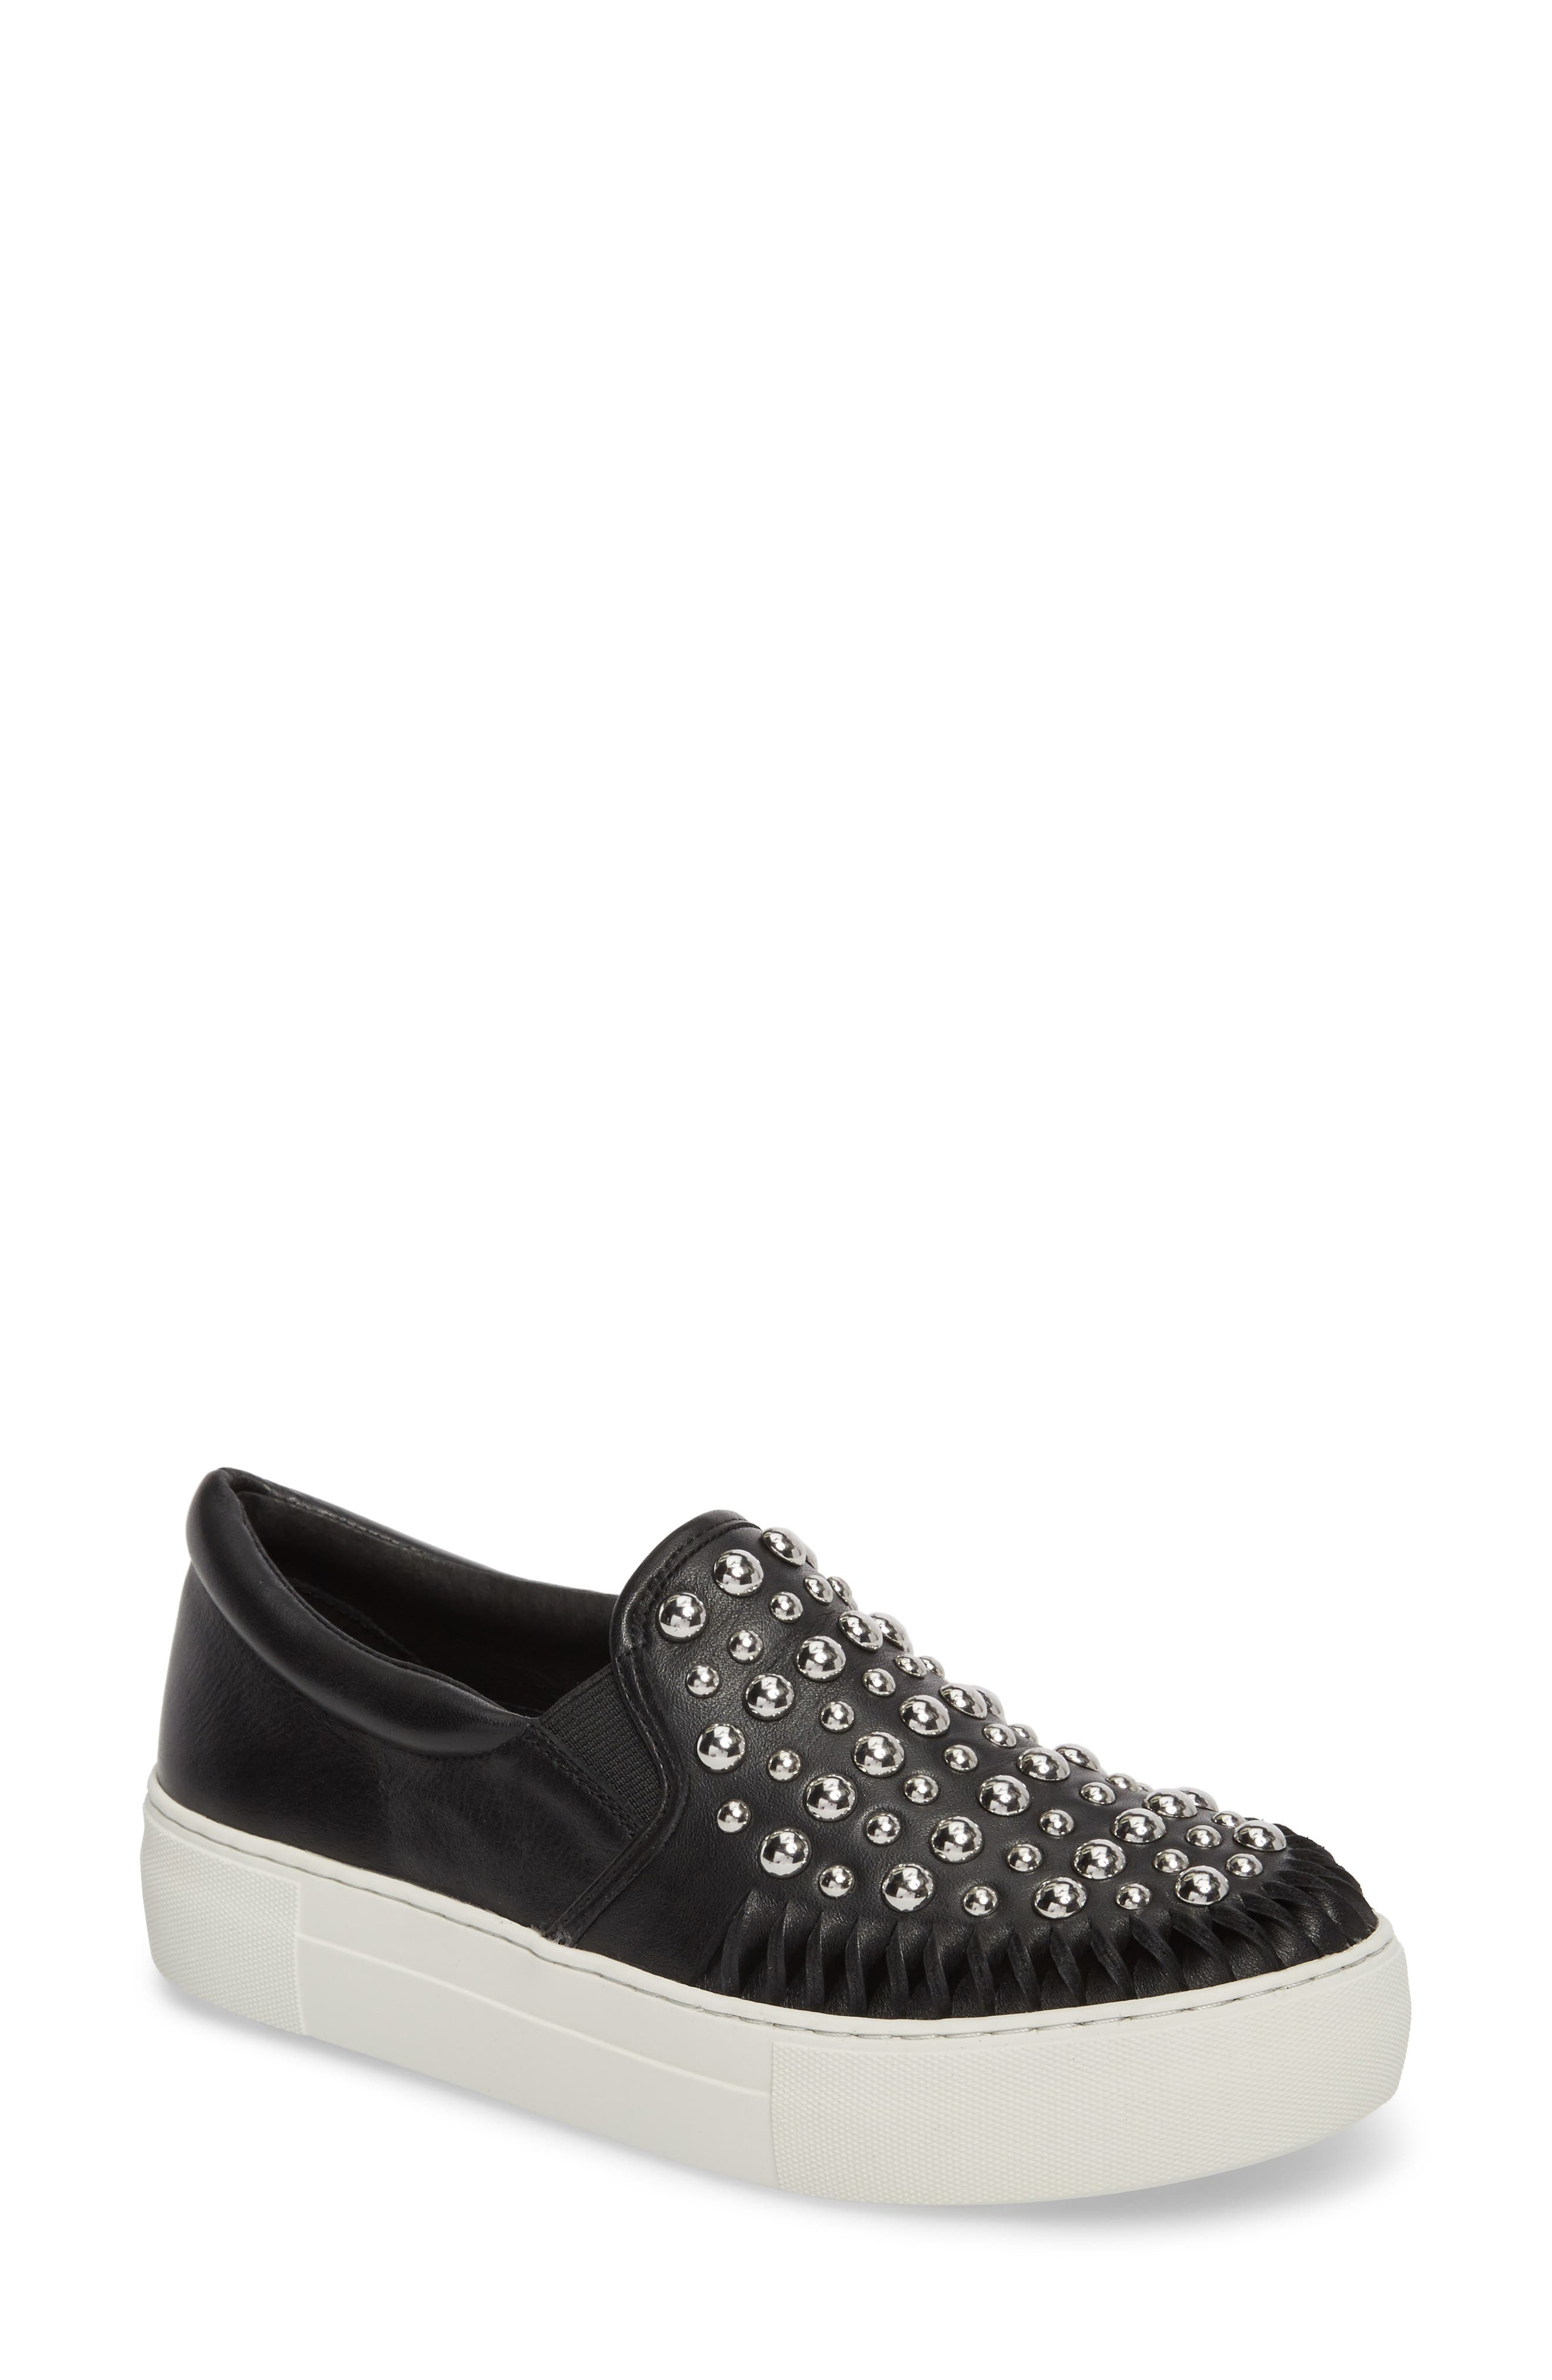 AZT Studded Slip-On Sneaker,                             Main thumbnail 1, color,                             015